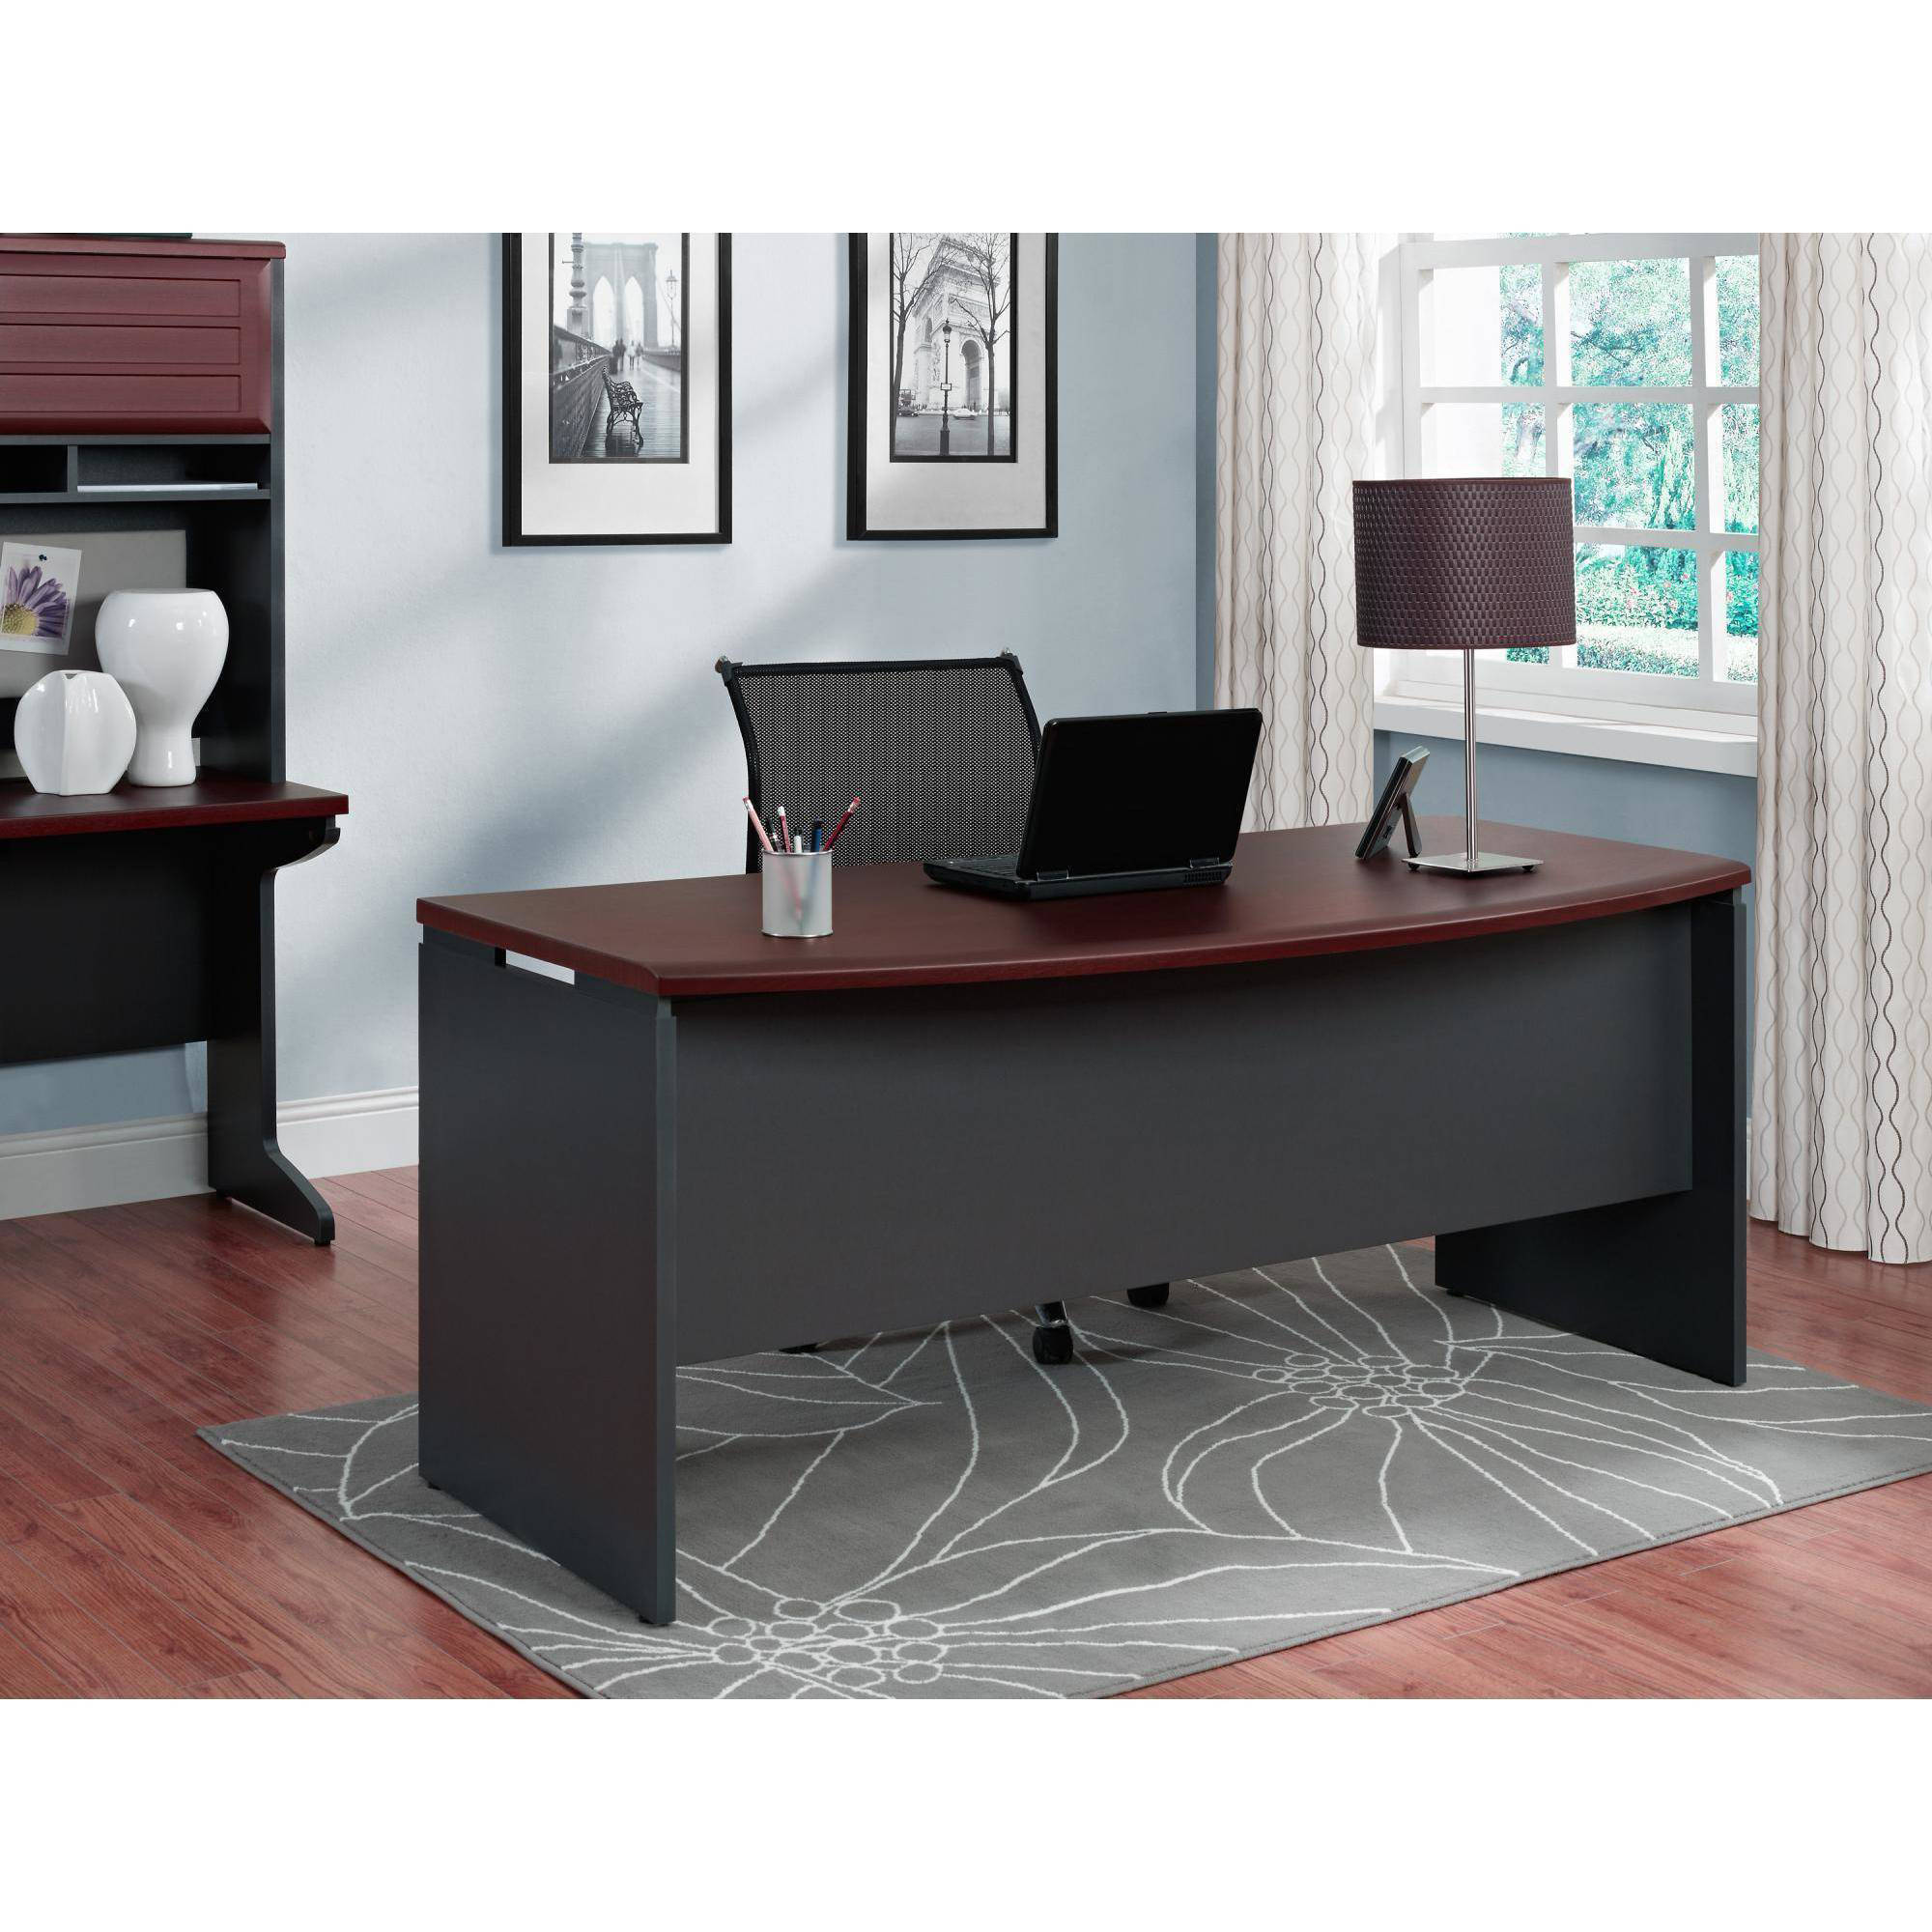 photos executive amusing minimalist design interesting table desk office modern